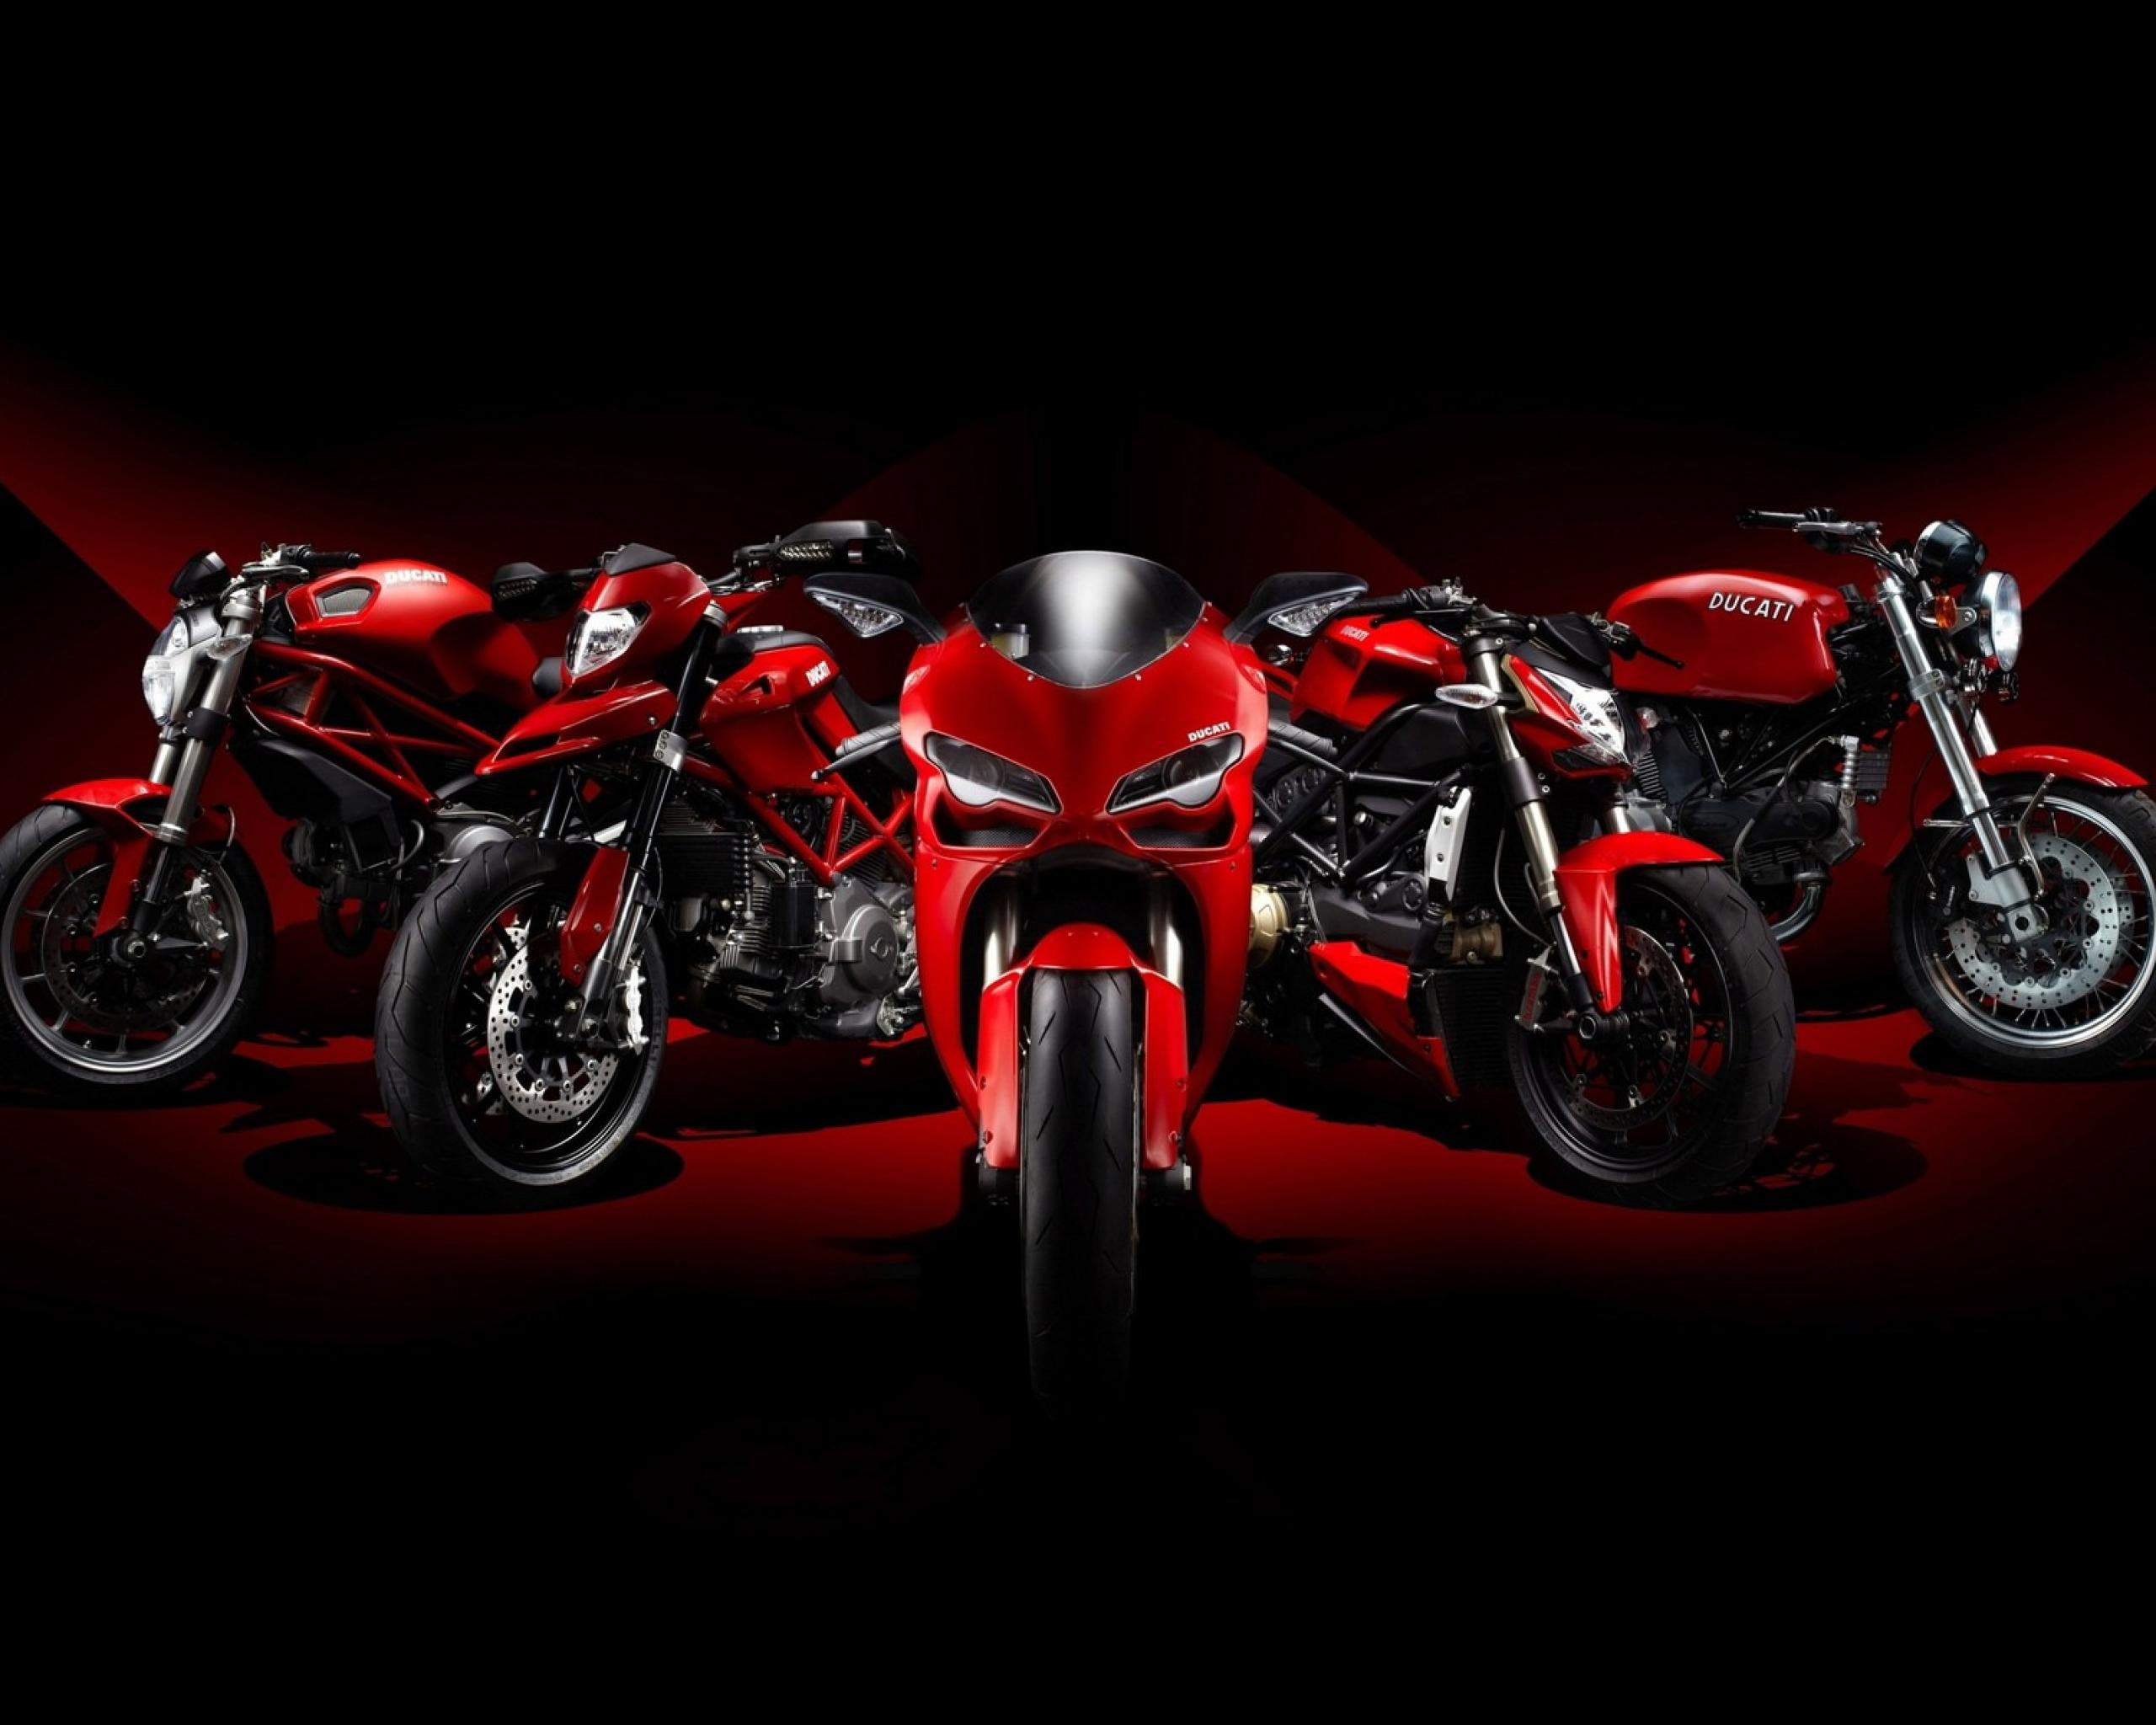 motorcycle wallpapers hd - wallpaper cave